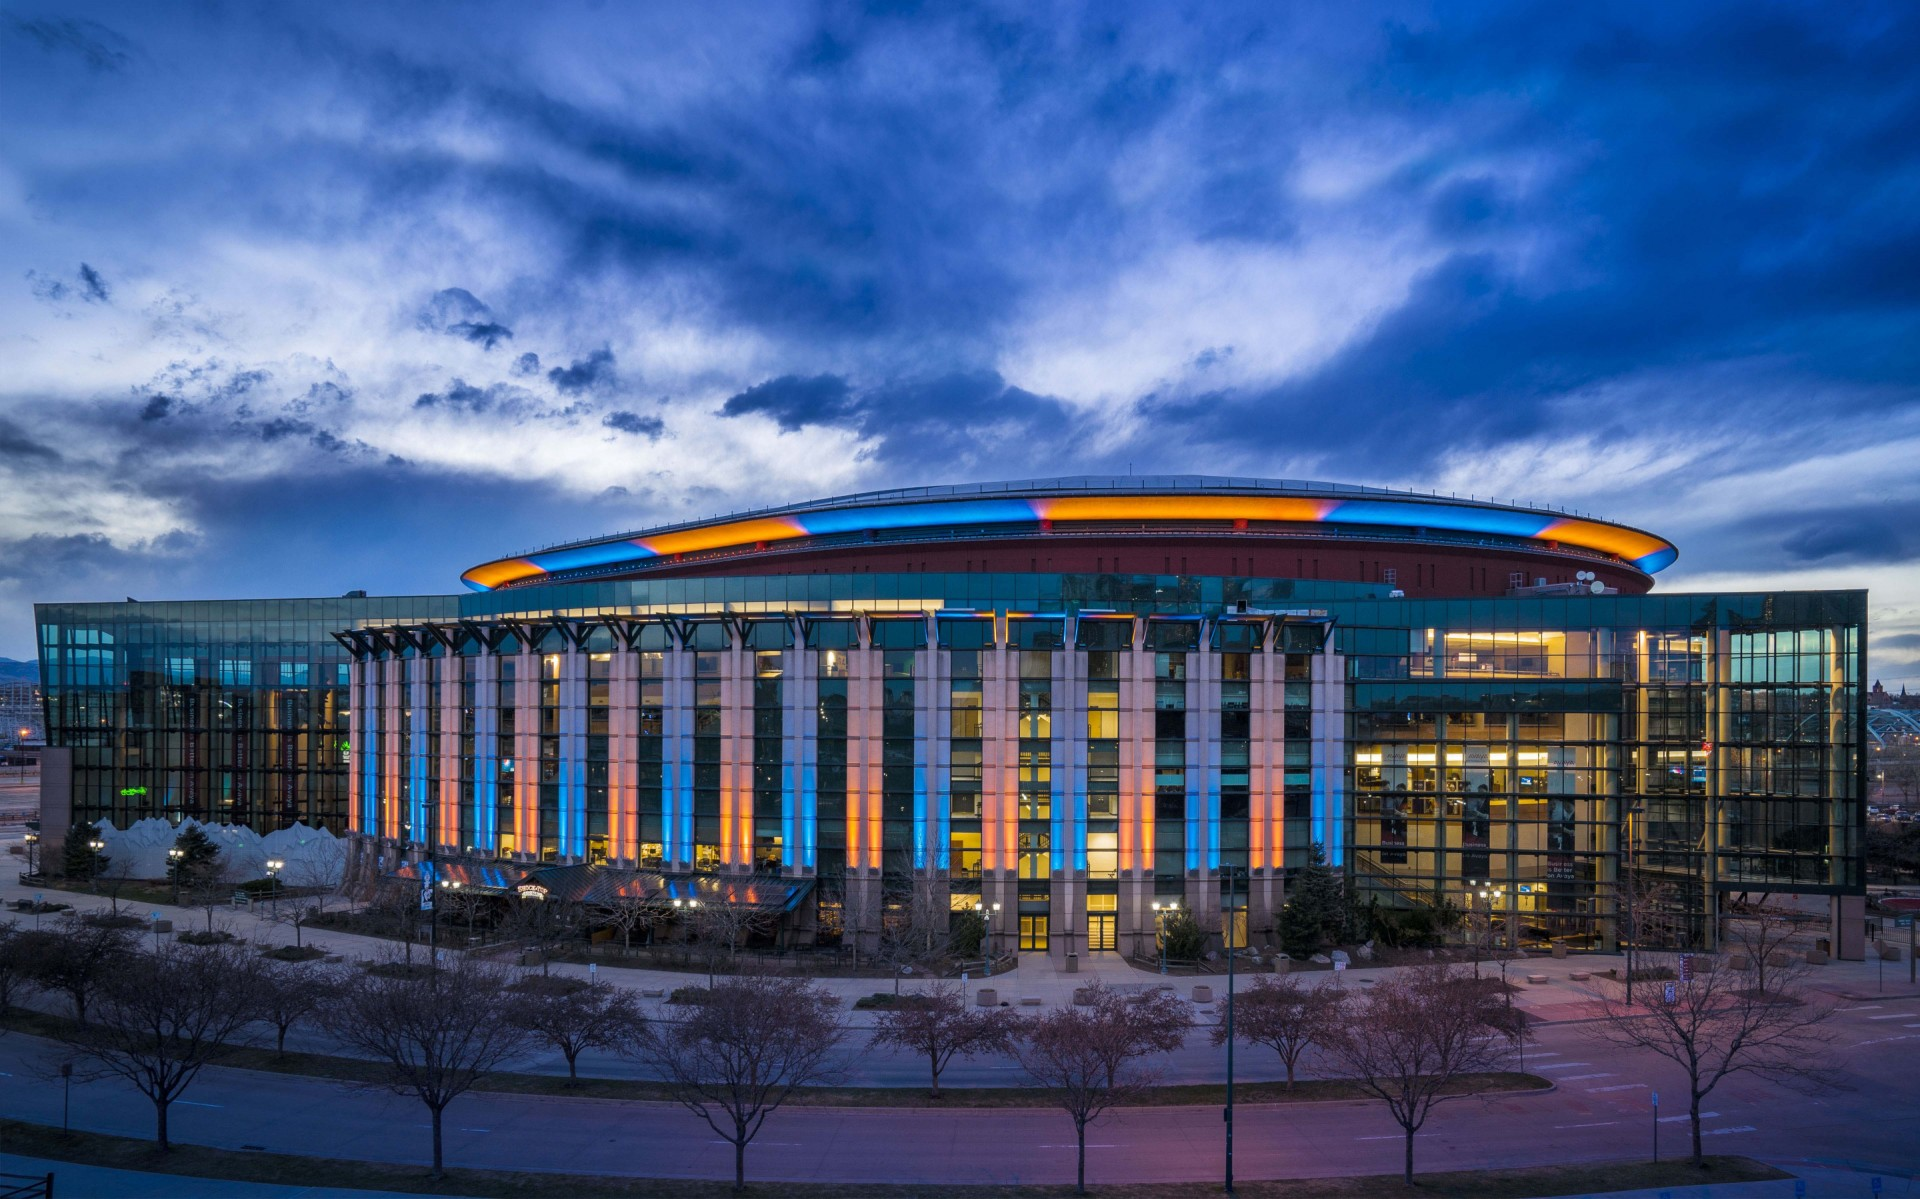 Lumenpulse luminaires were chosen to retrofit the Pepsi Center because of their control flexibility and fluid color-changing capabilities.  – Sam Koerbel